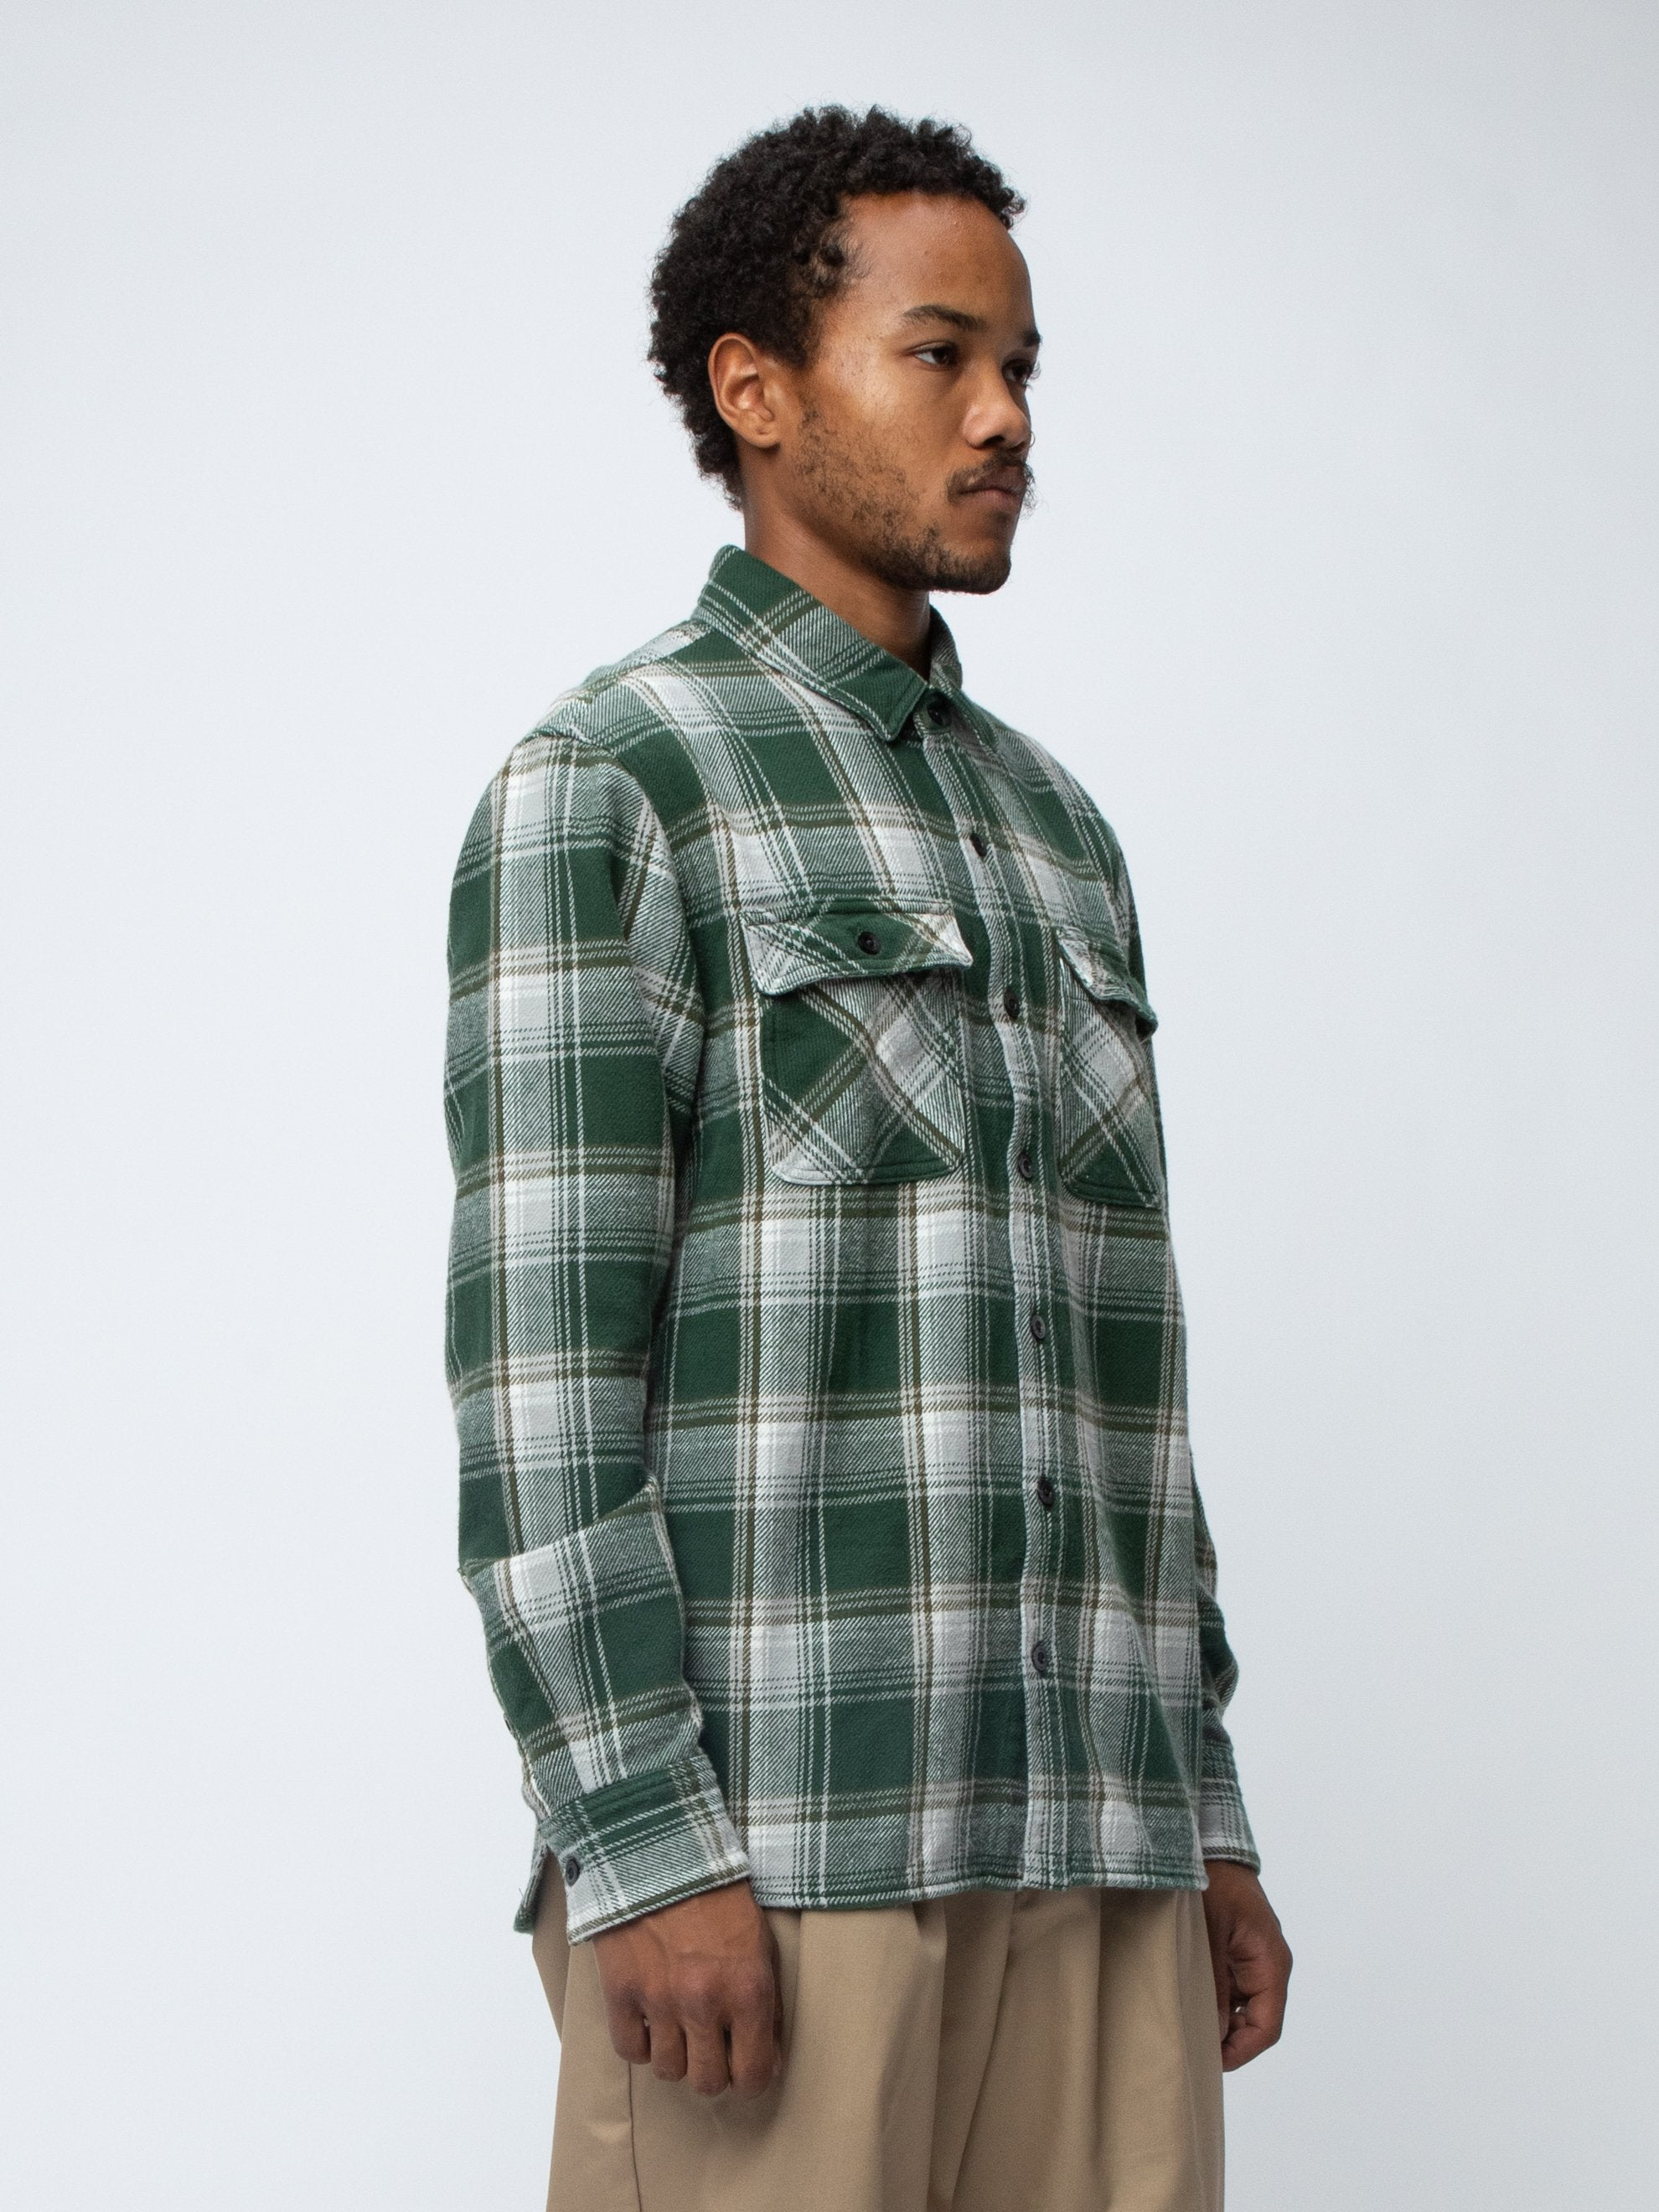 Green CABELLA / C-SHIRT . LS 4